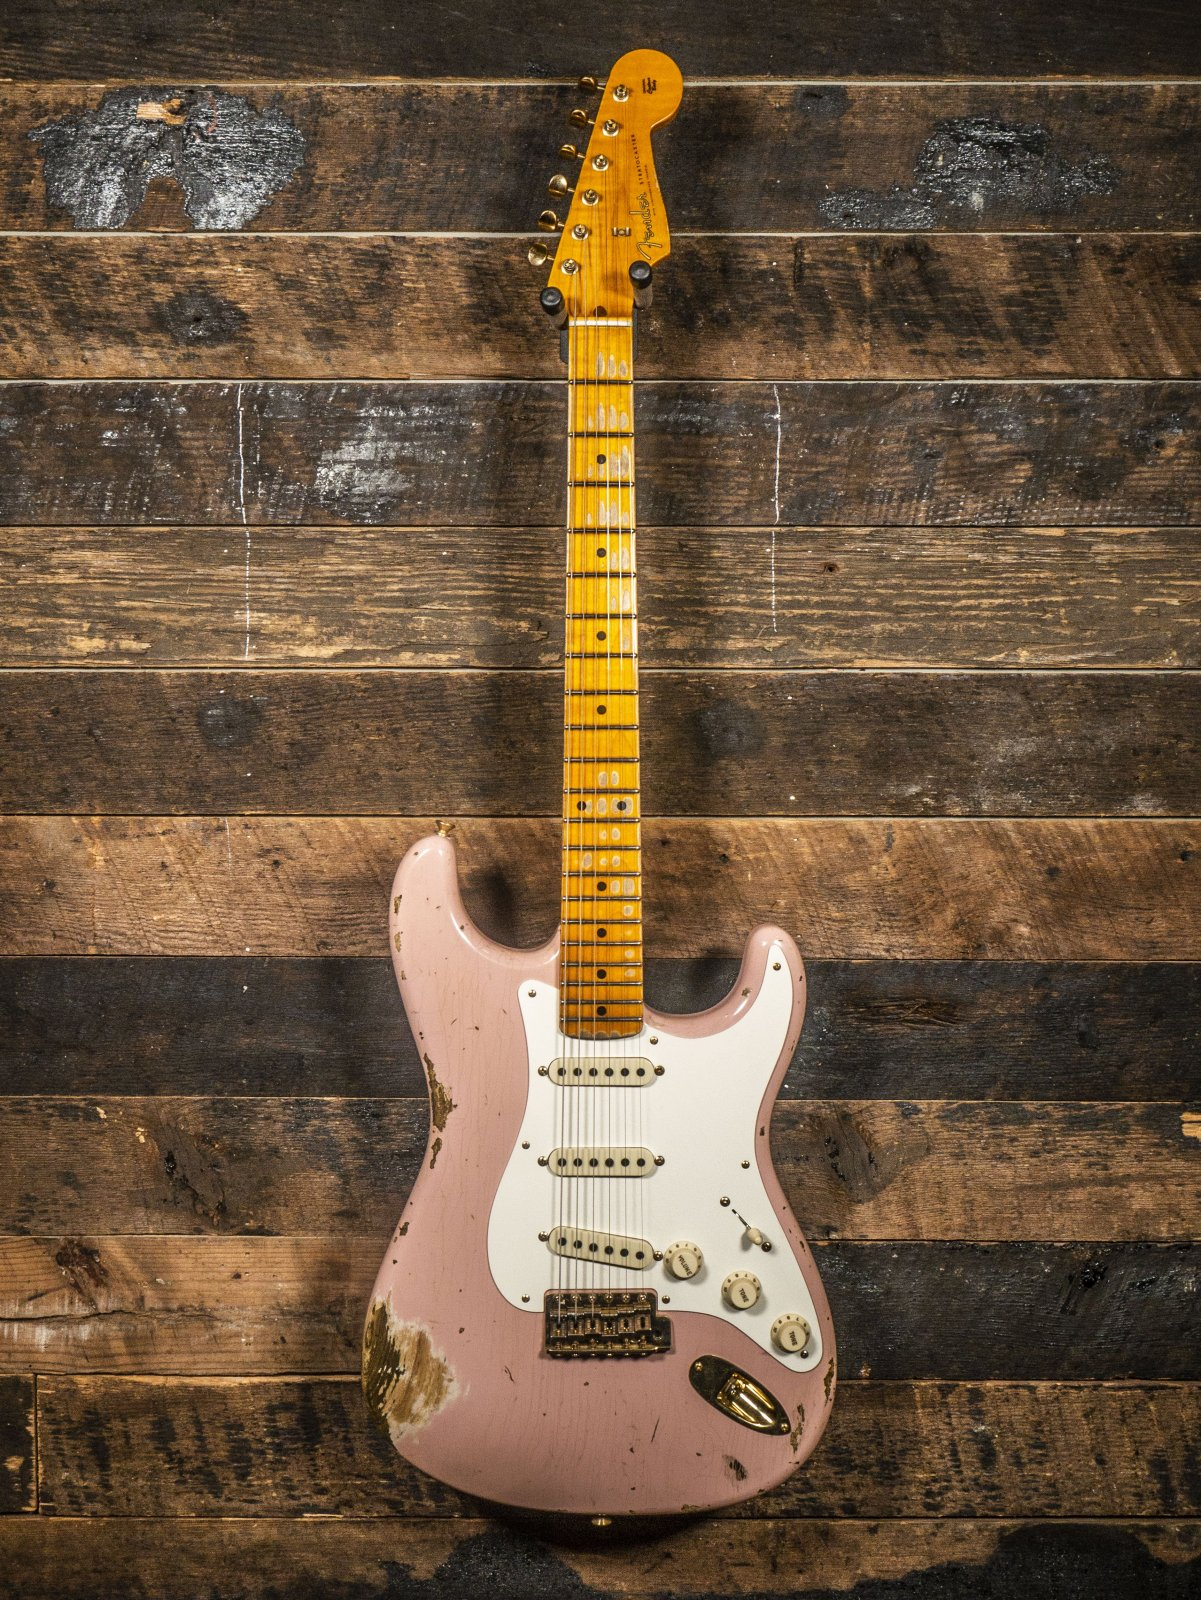 Fender Custom Shop 57 Super Faded Heavy Relic Stratocaster Aged Shell Pink